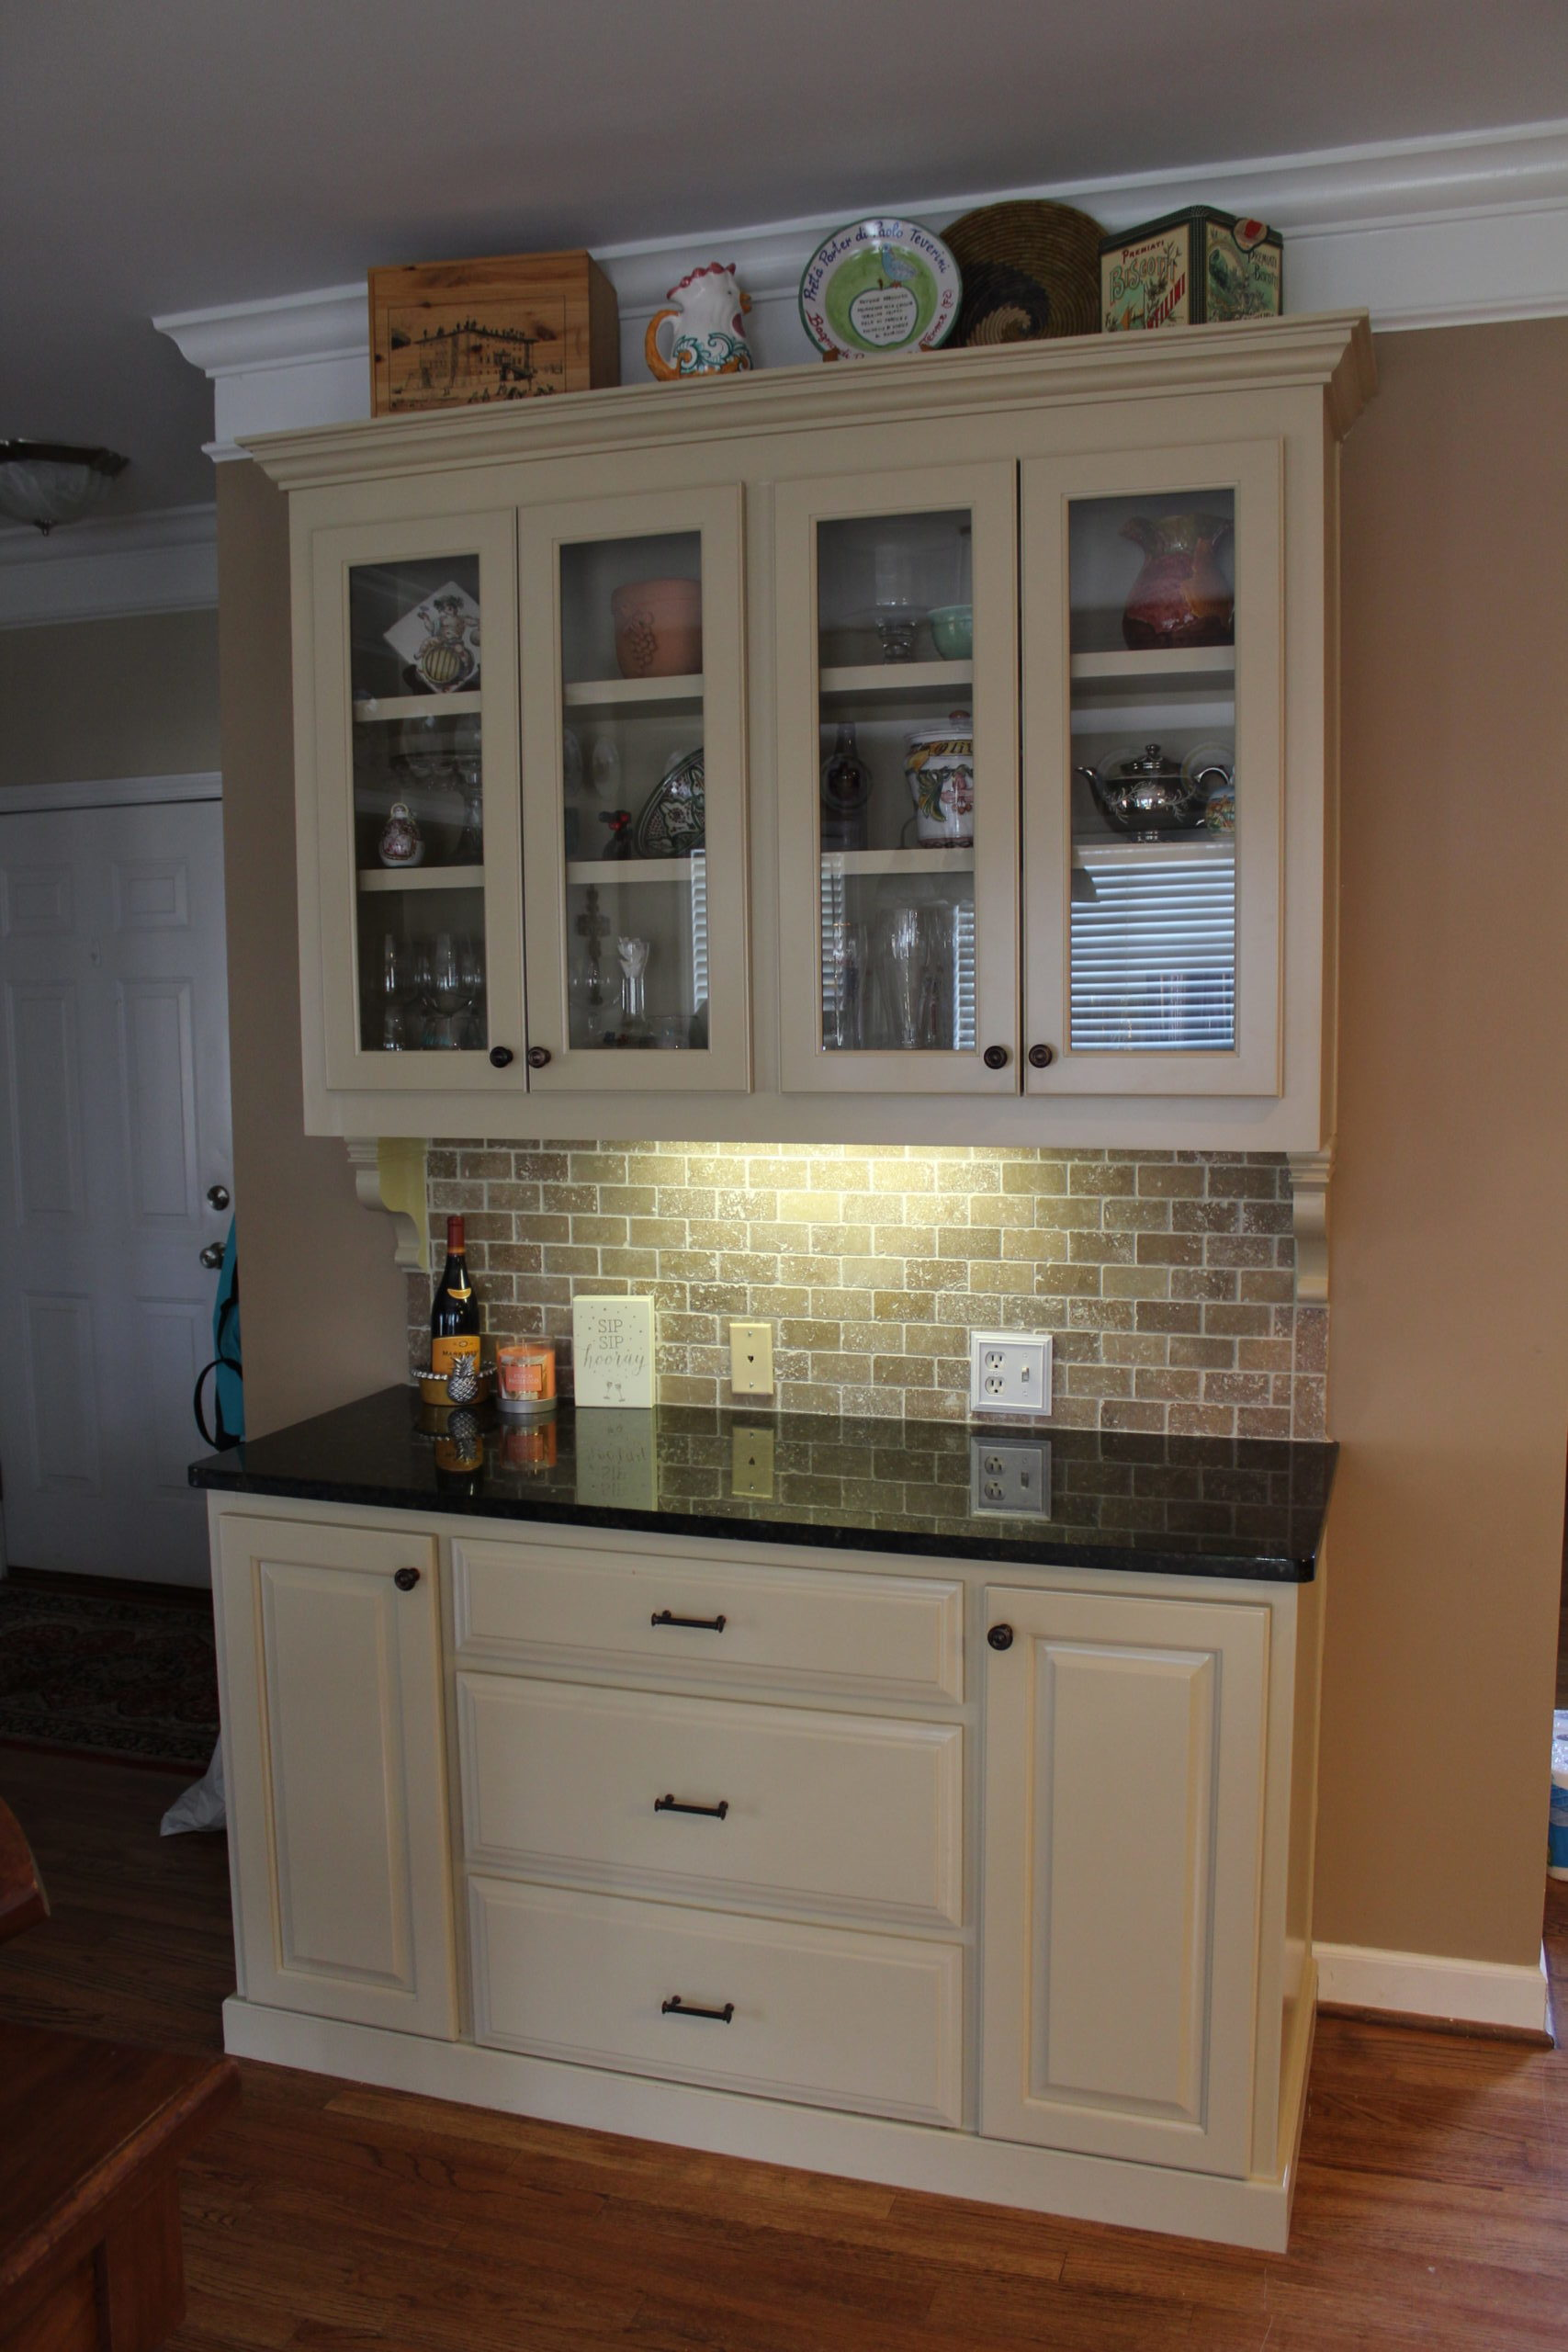 kitchen-remodeling-work-TAG-Builder-308-BC-Kitchen-Remodel-2-scaled-e1586520743853